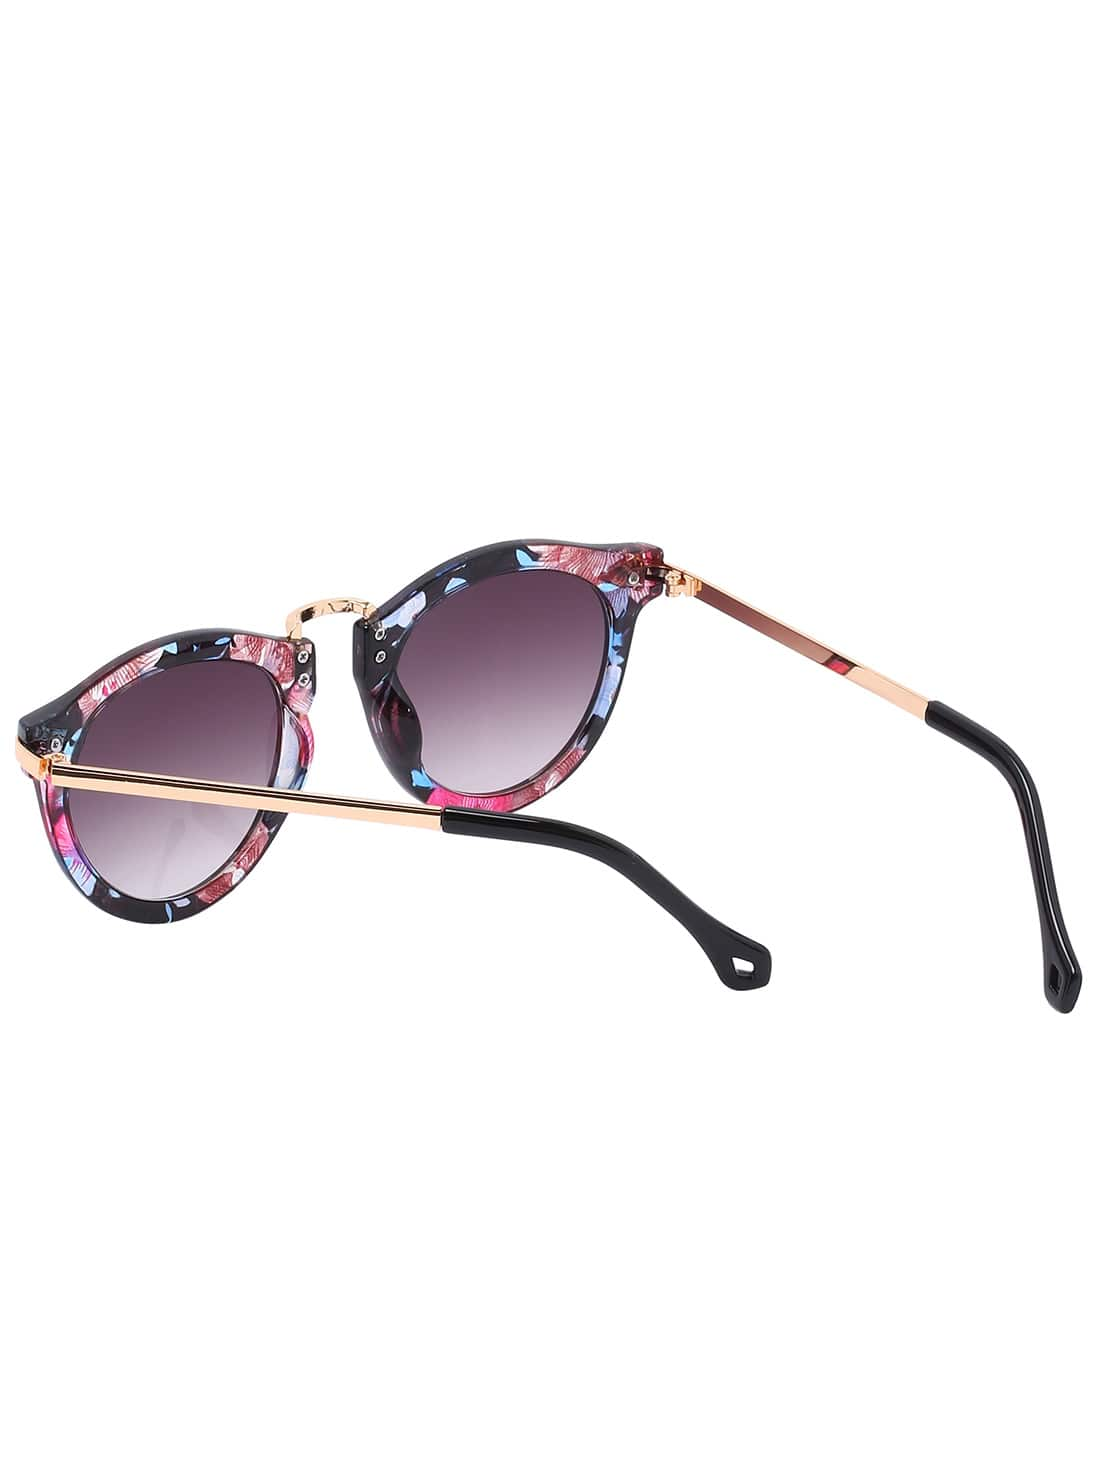 oversized round frame sunglasses - Multicolour N°21 5FuI9